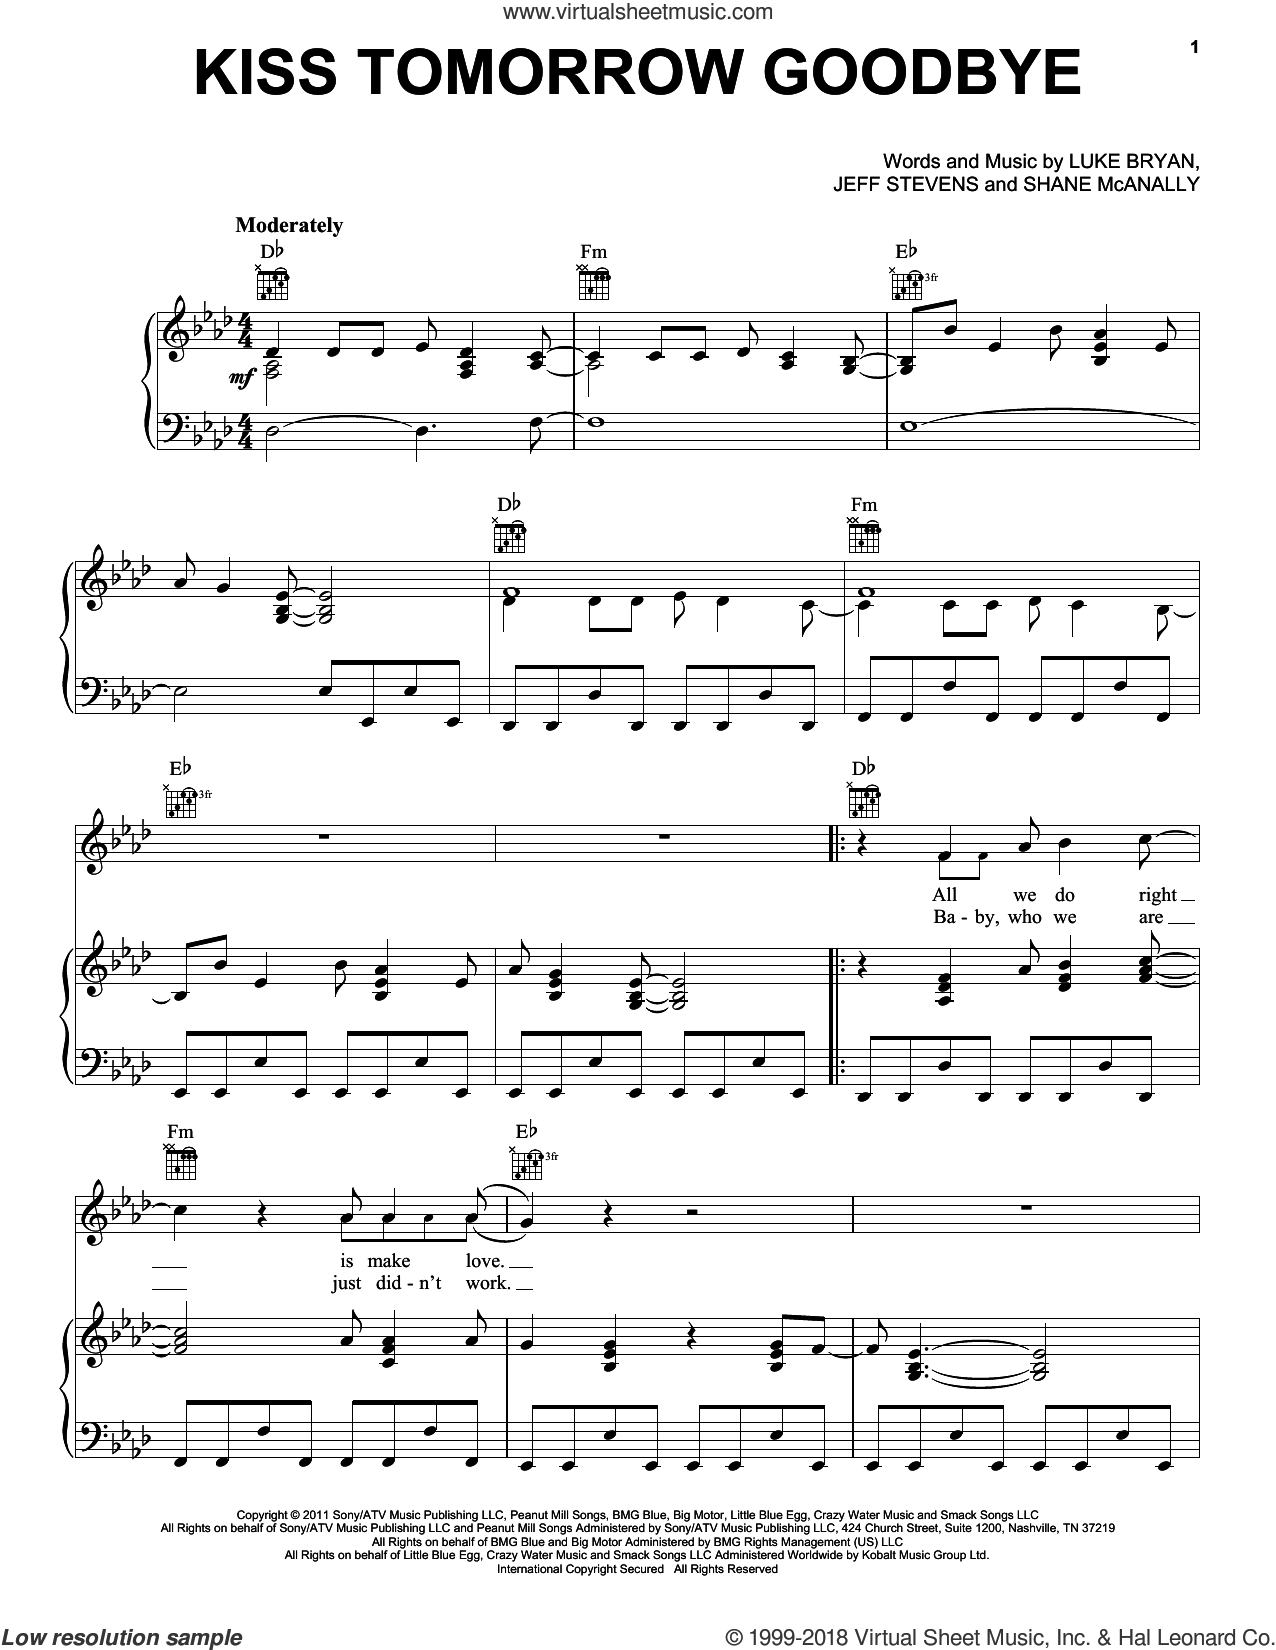 Kiss Tomorrow Goodbye sheet music for voice, piano or guitar by Shane McAnally